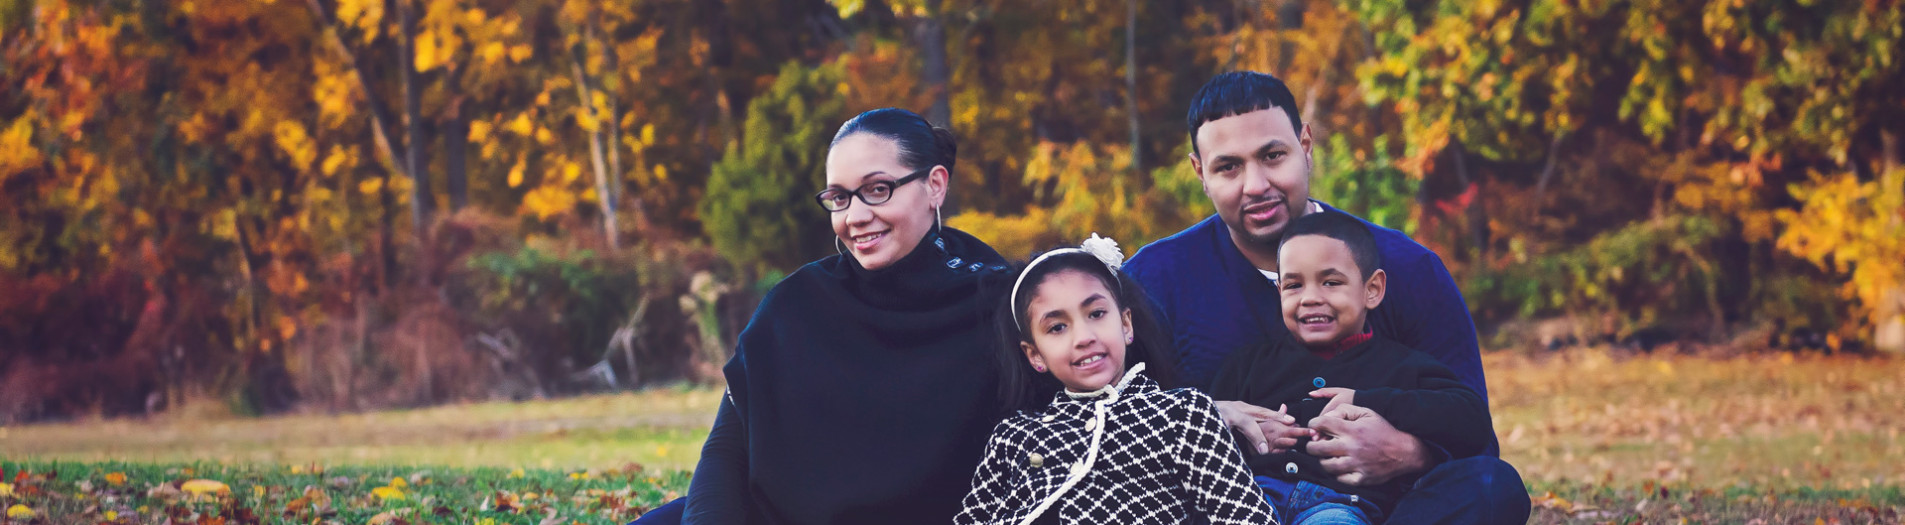 Cabrera Family {New York, Family Photography}